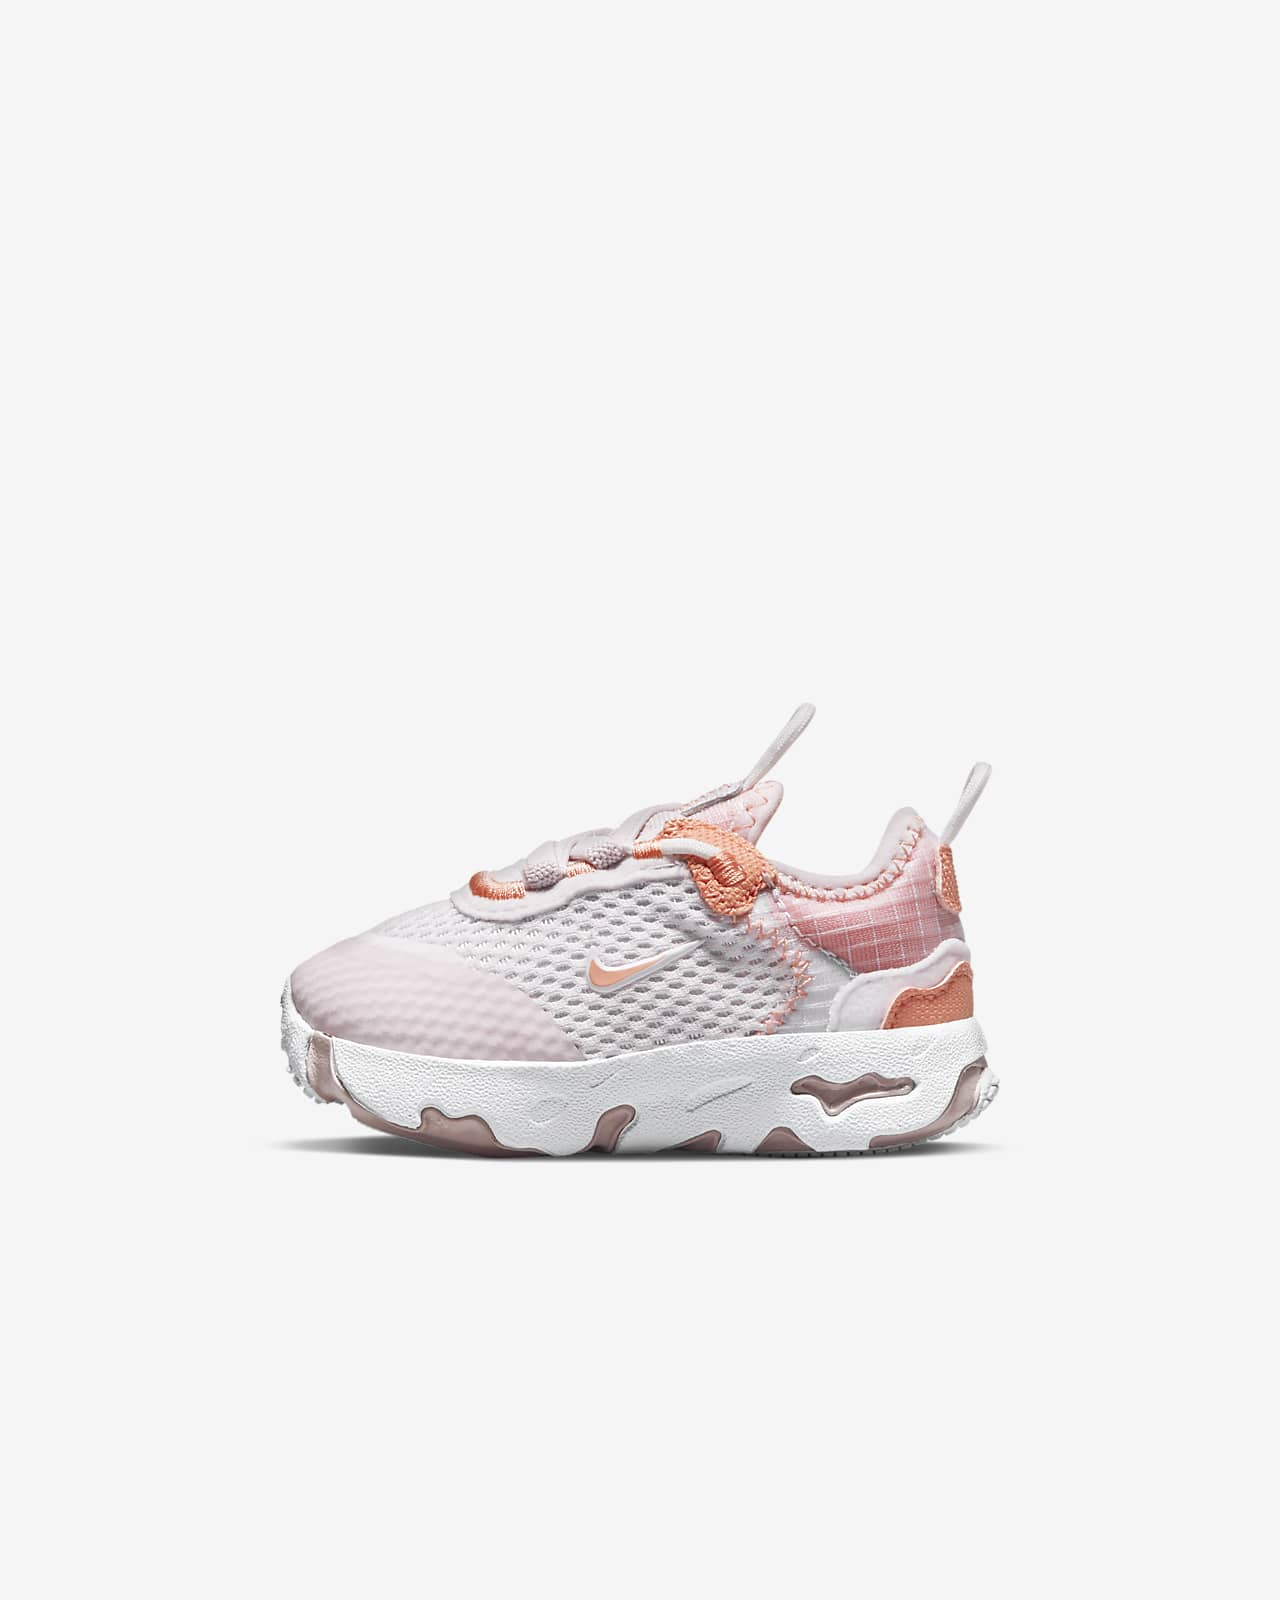 Nike RT Live Baby and Toddler Shoe